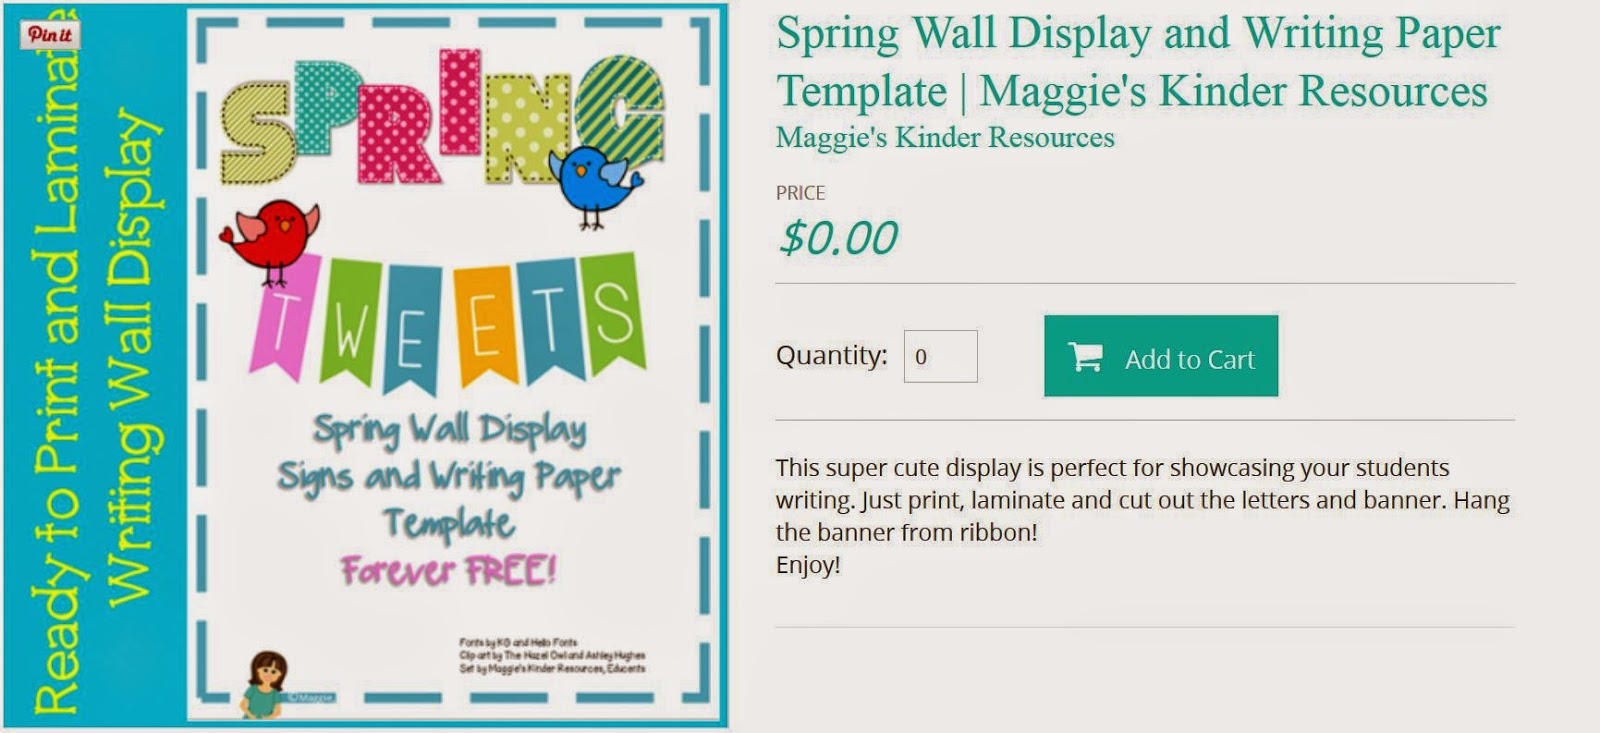 http://www.educents.com/spring-wall-display-and-writing-paper-template.html